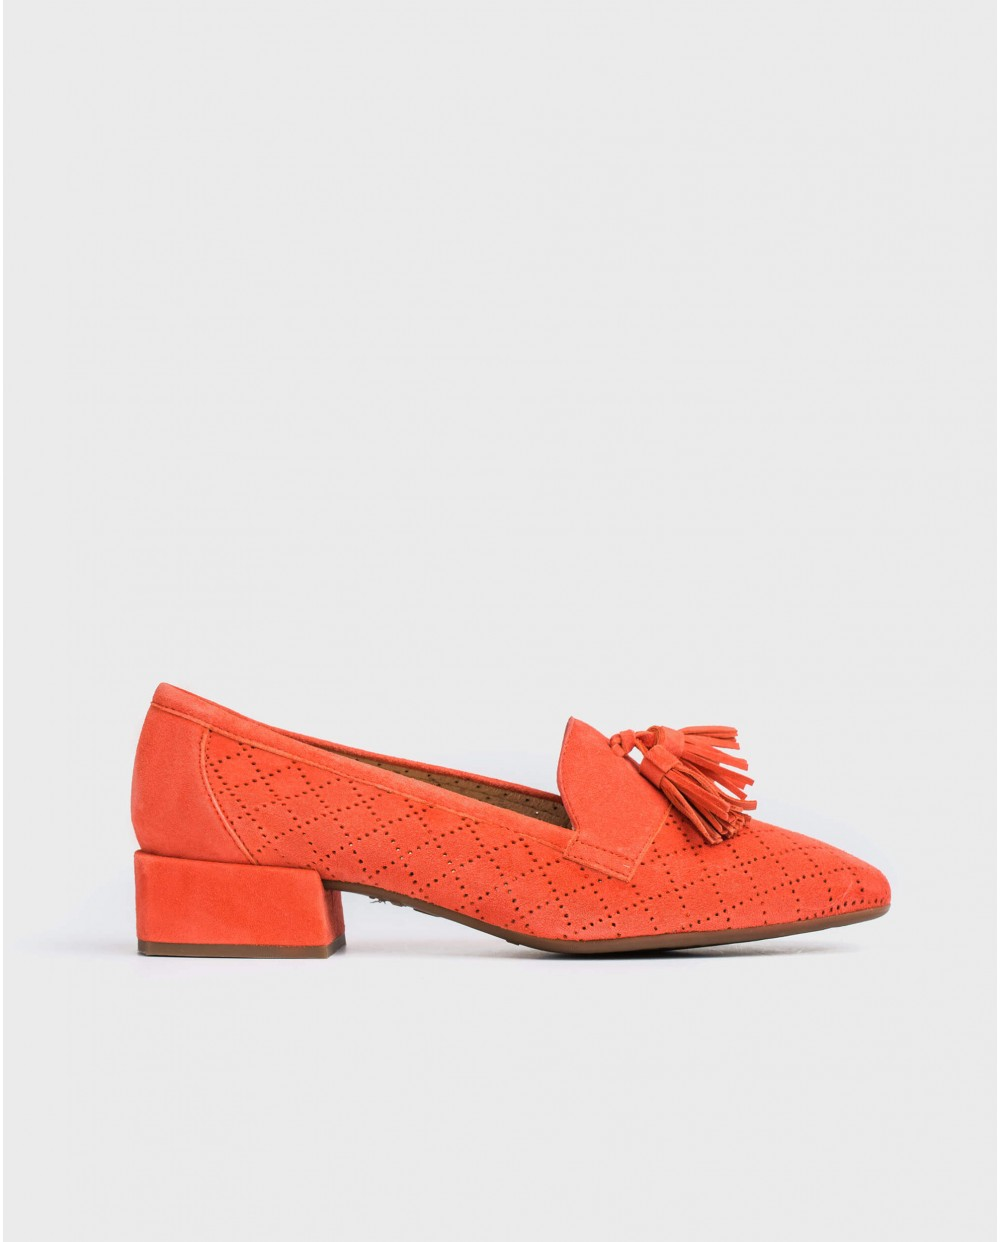 Wonders-Flat Shoes-Leather moccasin with tassel